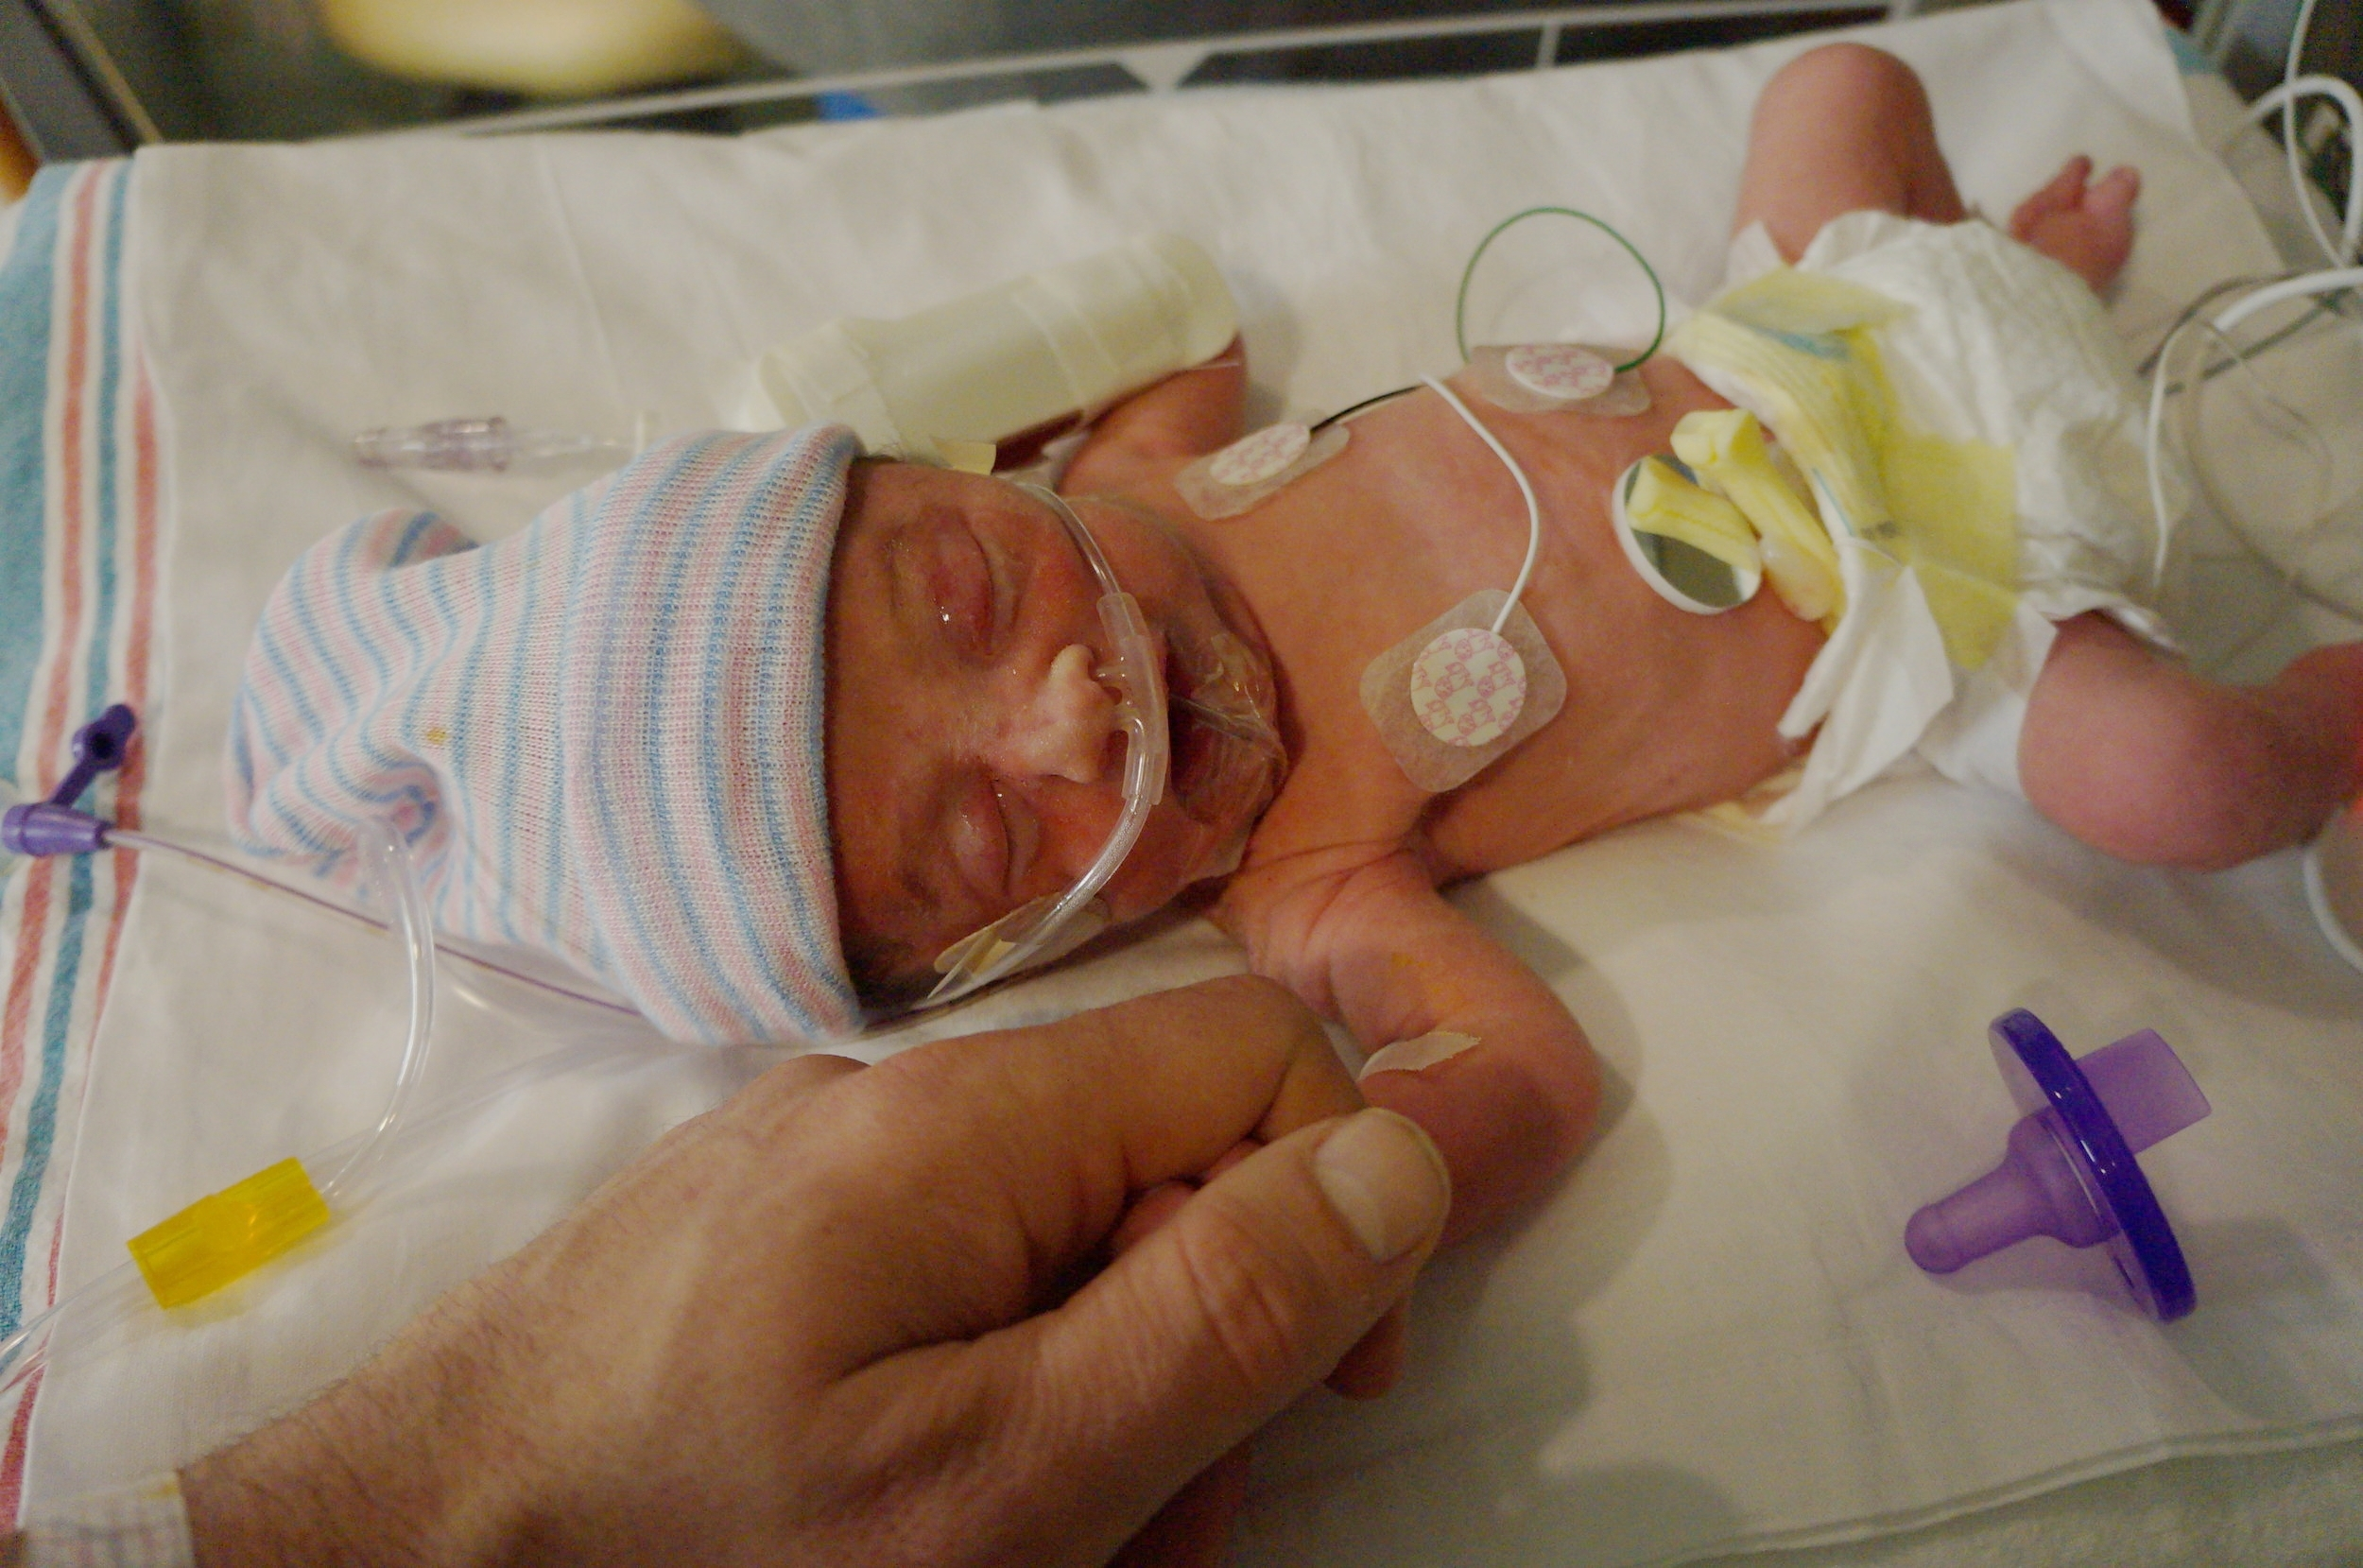 Beau's first day in the NICU, born 7 weeks early.